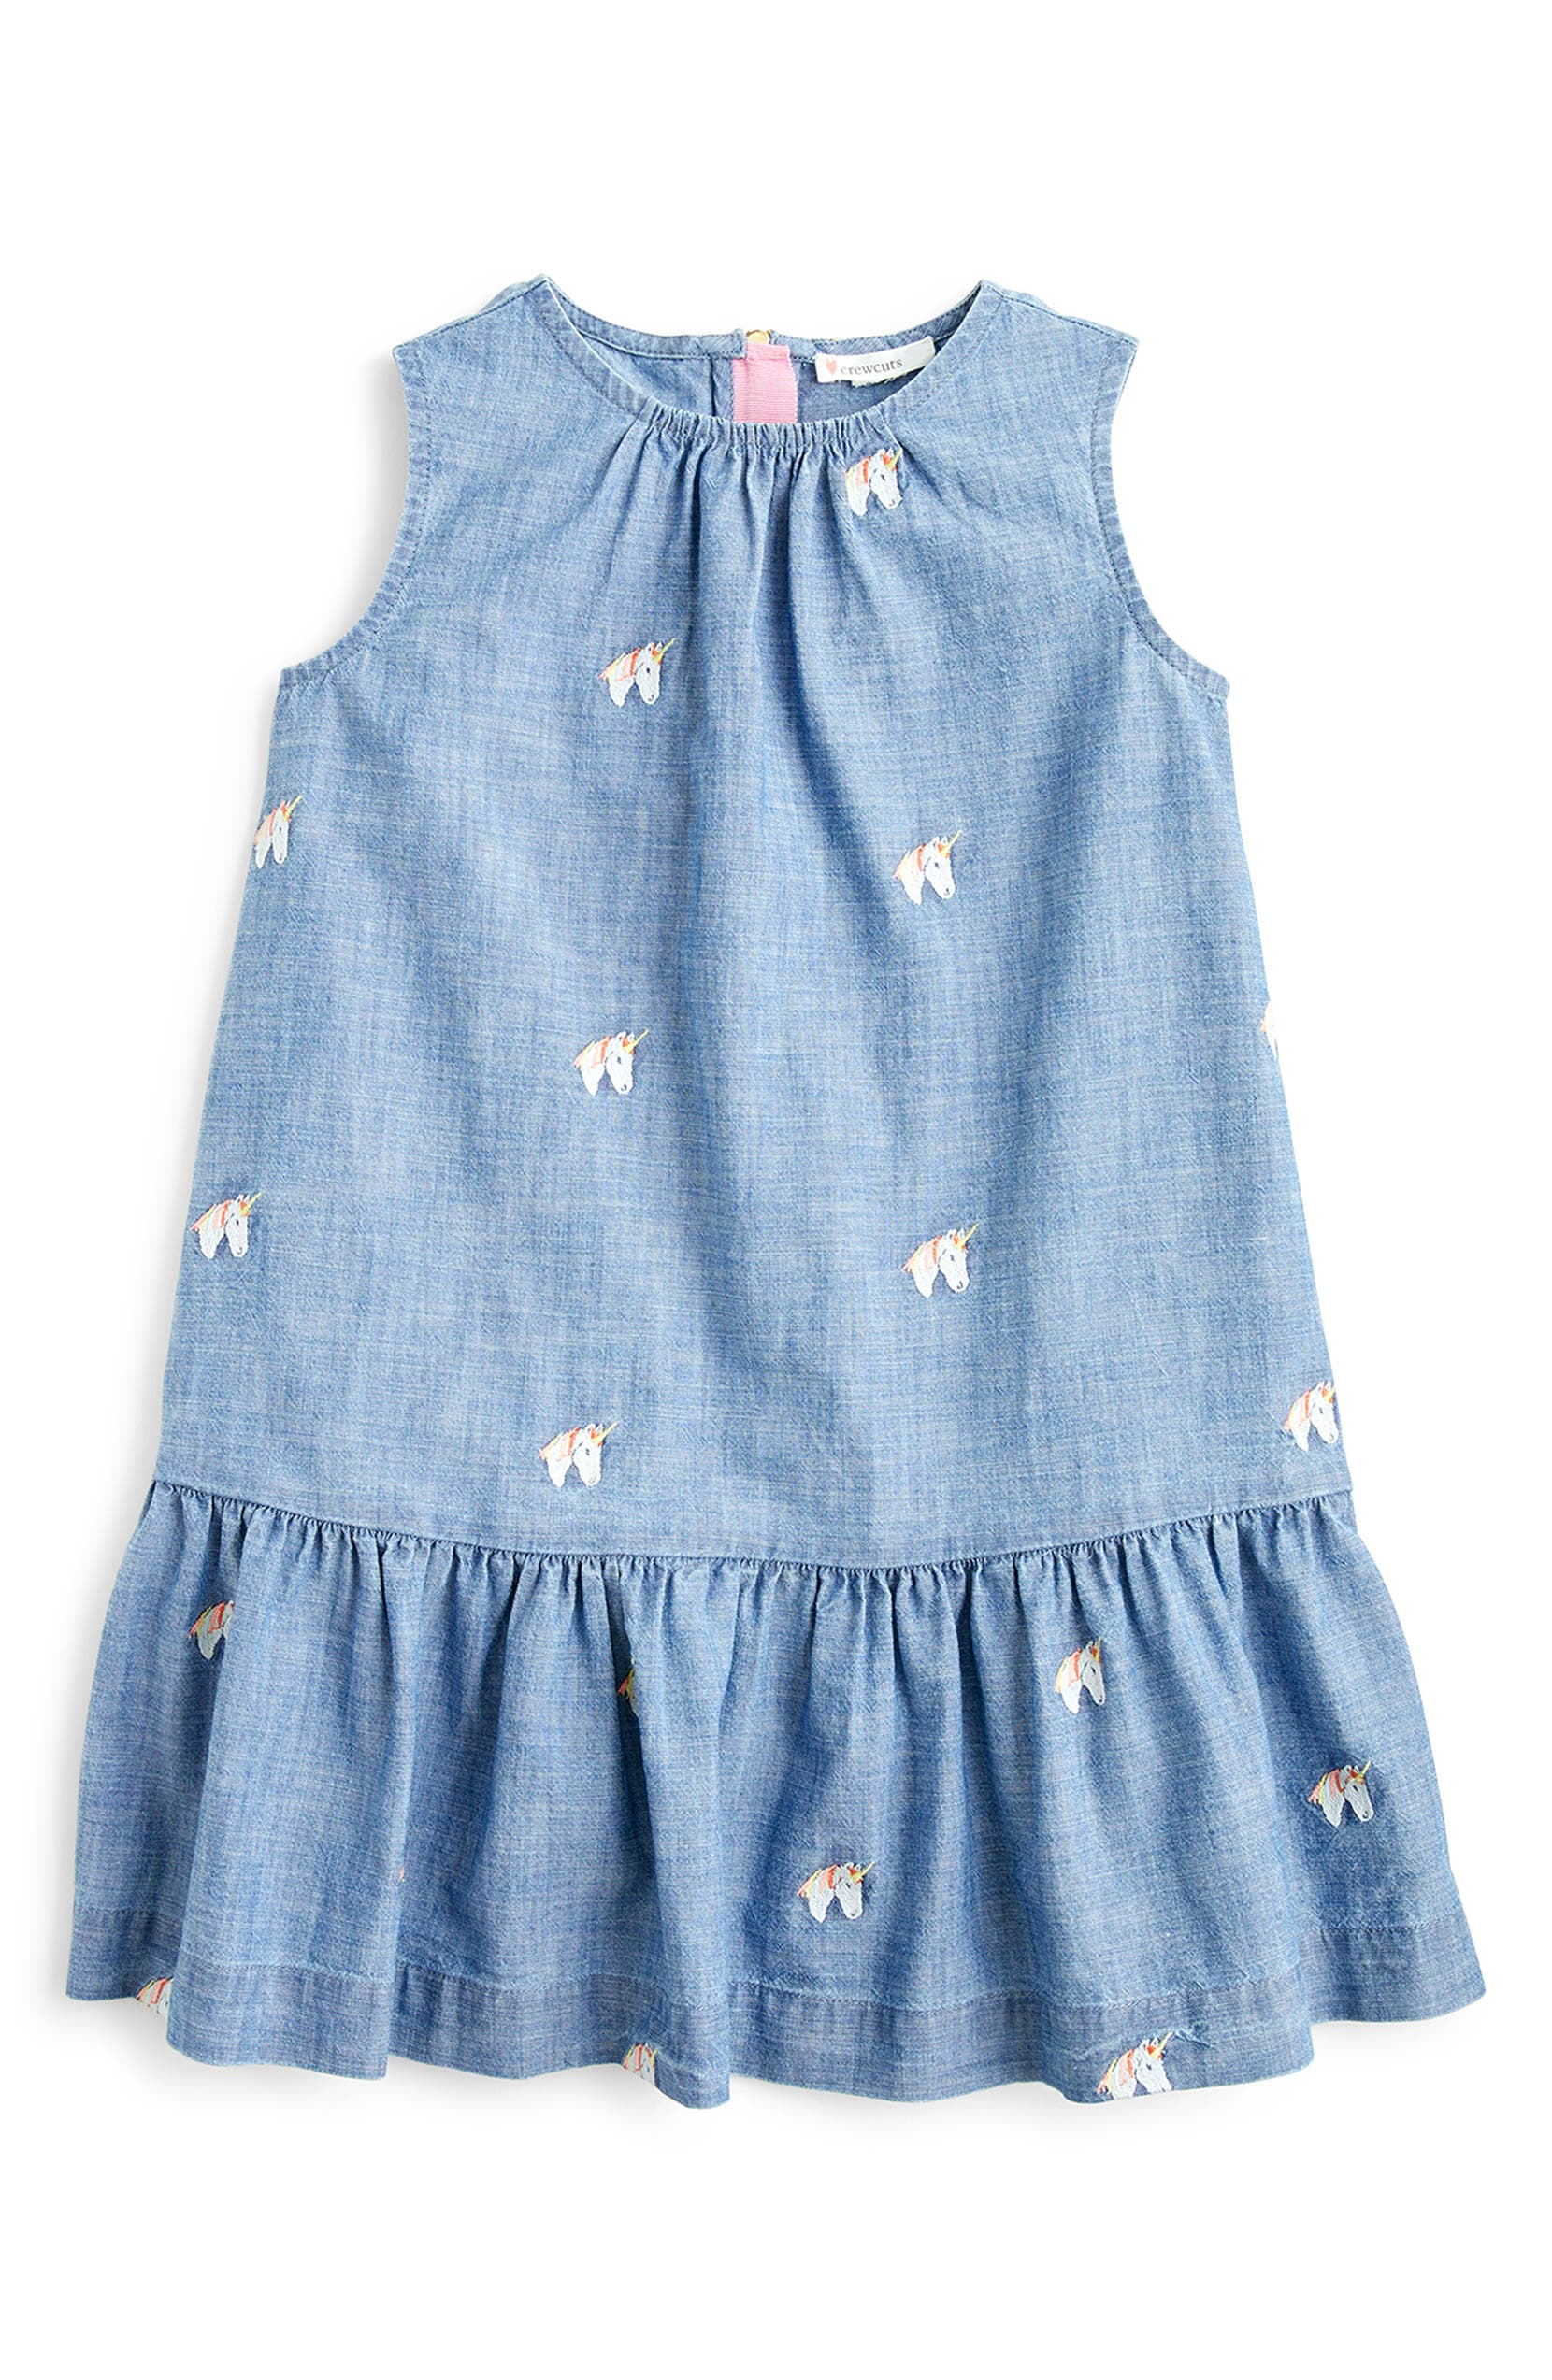 95a72f05d8 crewcuts by J.Crew Embroidered Unicorns Chambray Dress | Nordstrom